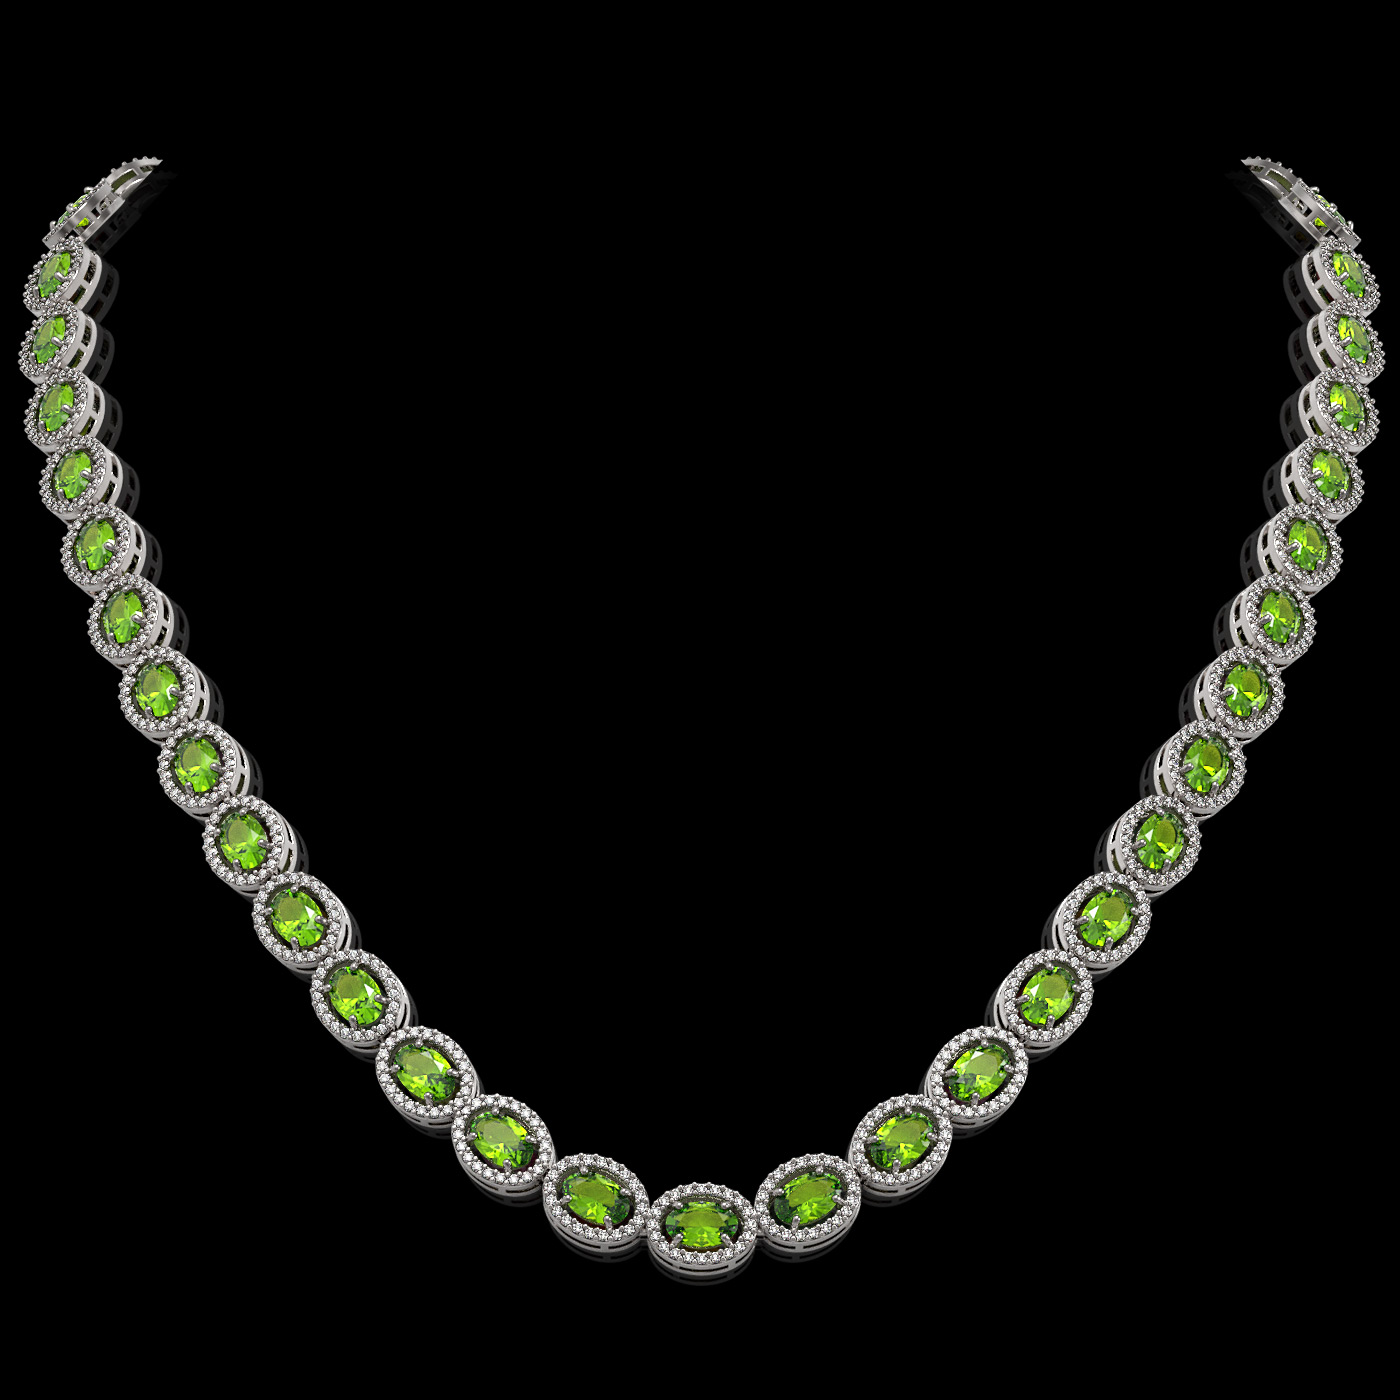 31.1 Ctw Peridot & Diamond Necklace White Gold